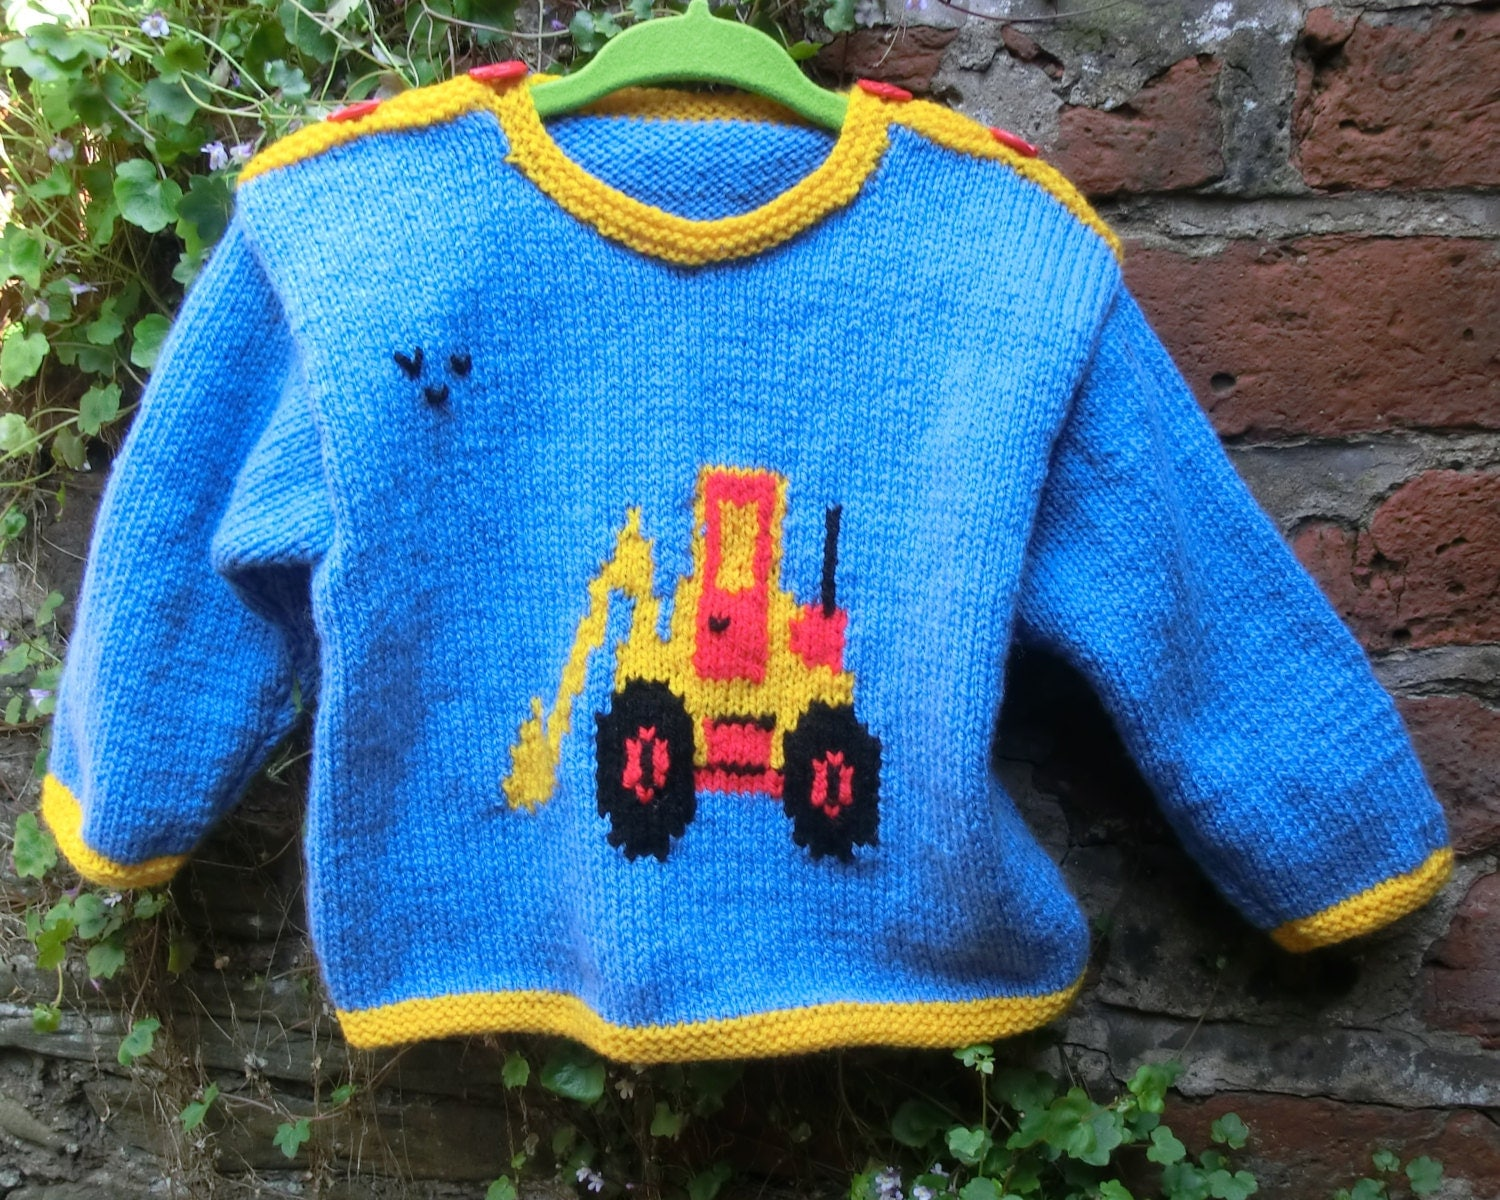 Childrens Knitting Pattern for Sweater with Digger Motif